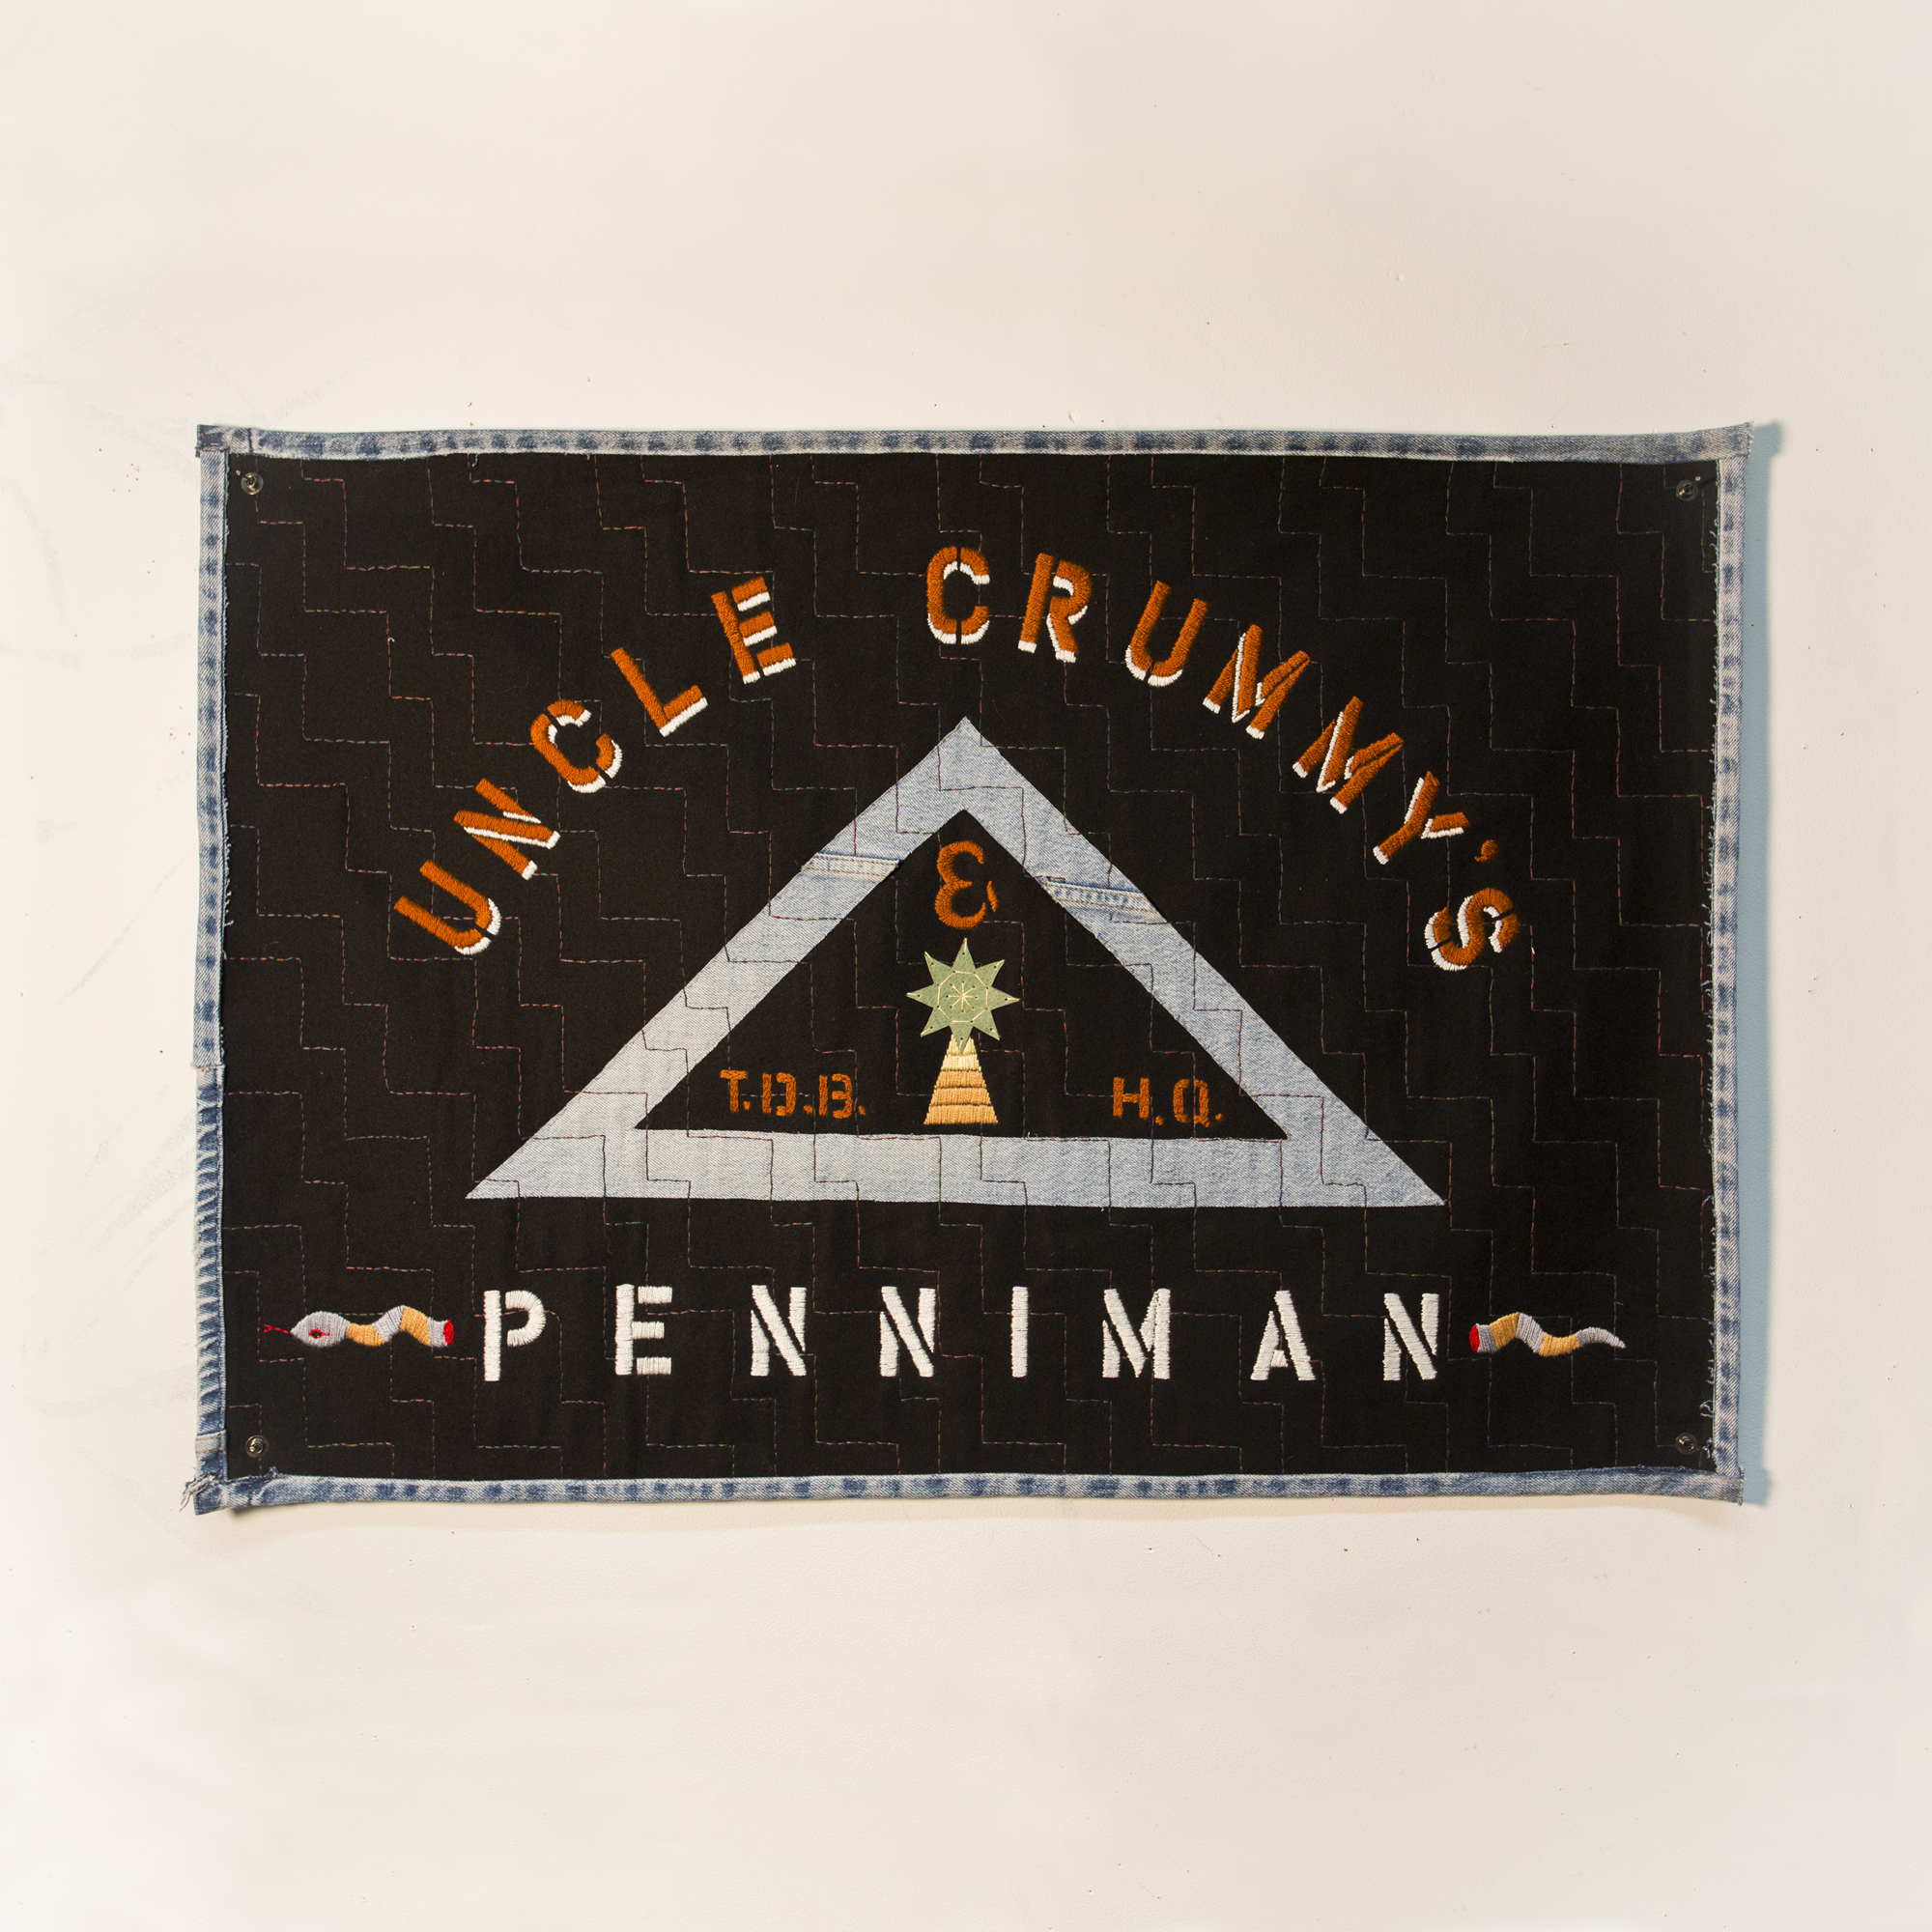 "Uncle Crummy's on Penniman Jeans, leather pants, wool, tencel, canvas 24.5 x 35"" 2014"